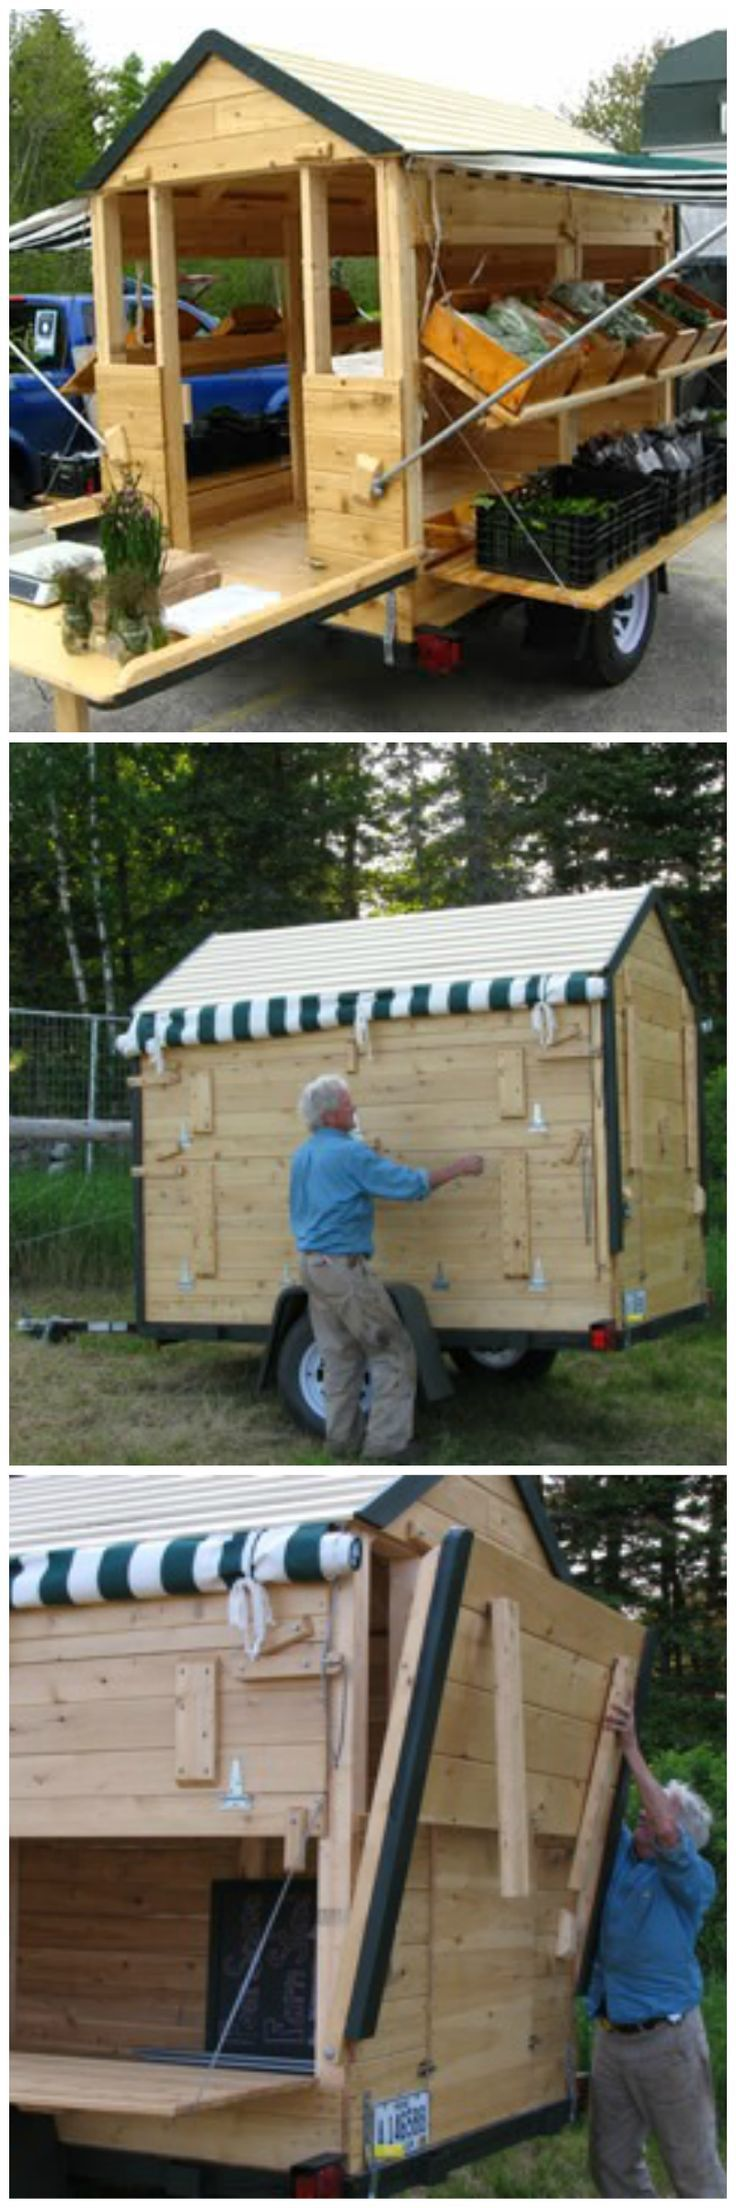 Portable Farm Stand, great for traveling farmer's market